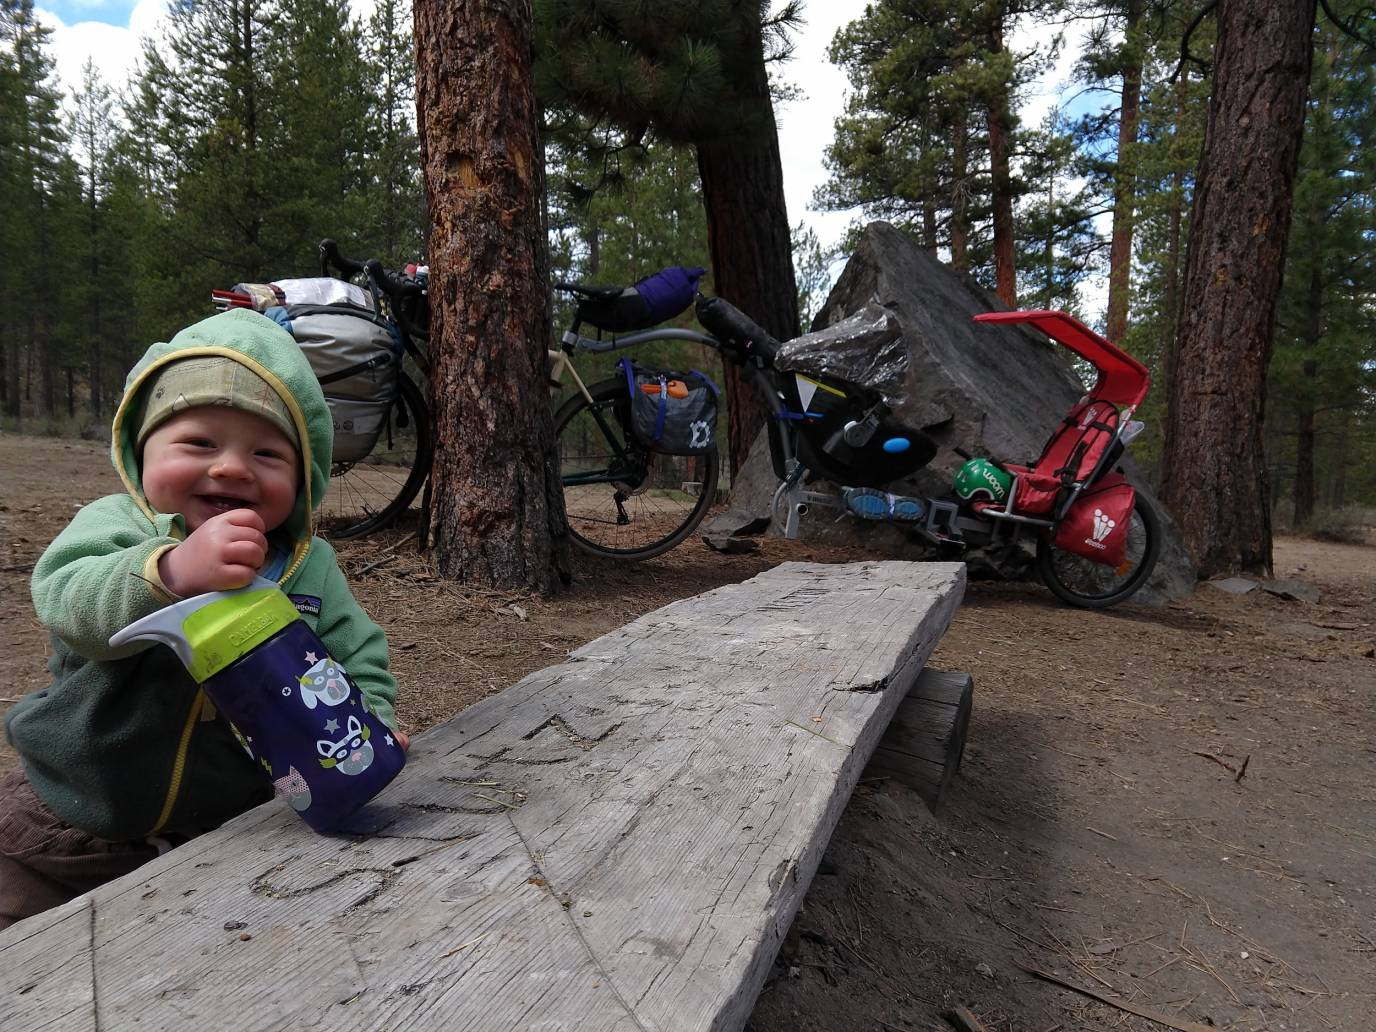 Bikepacking with Kids - Family Camping